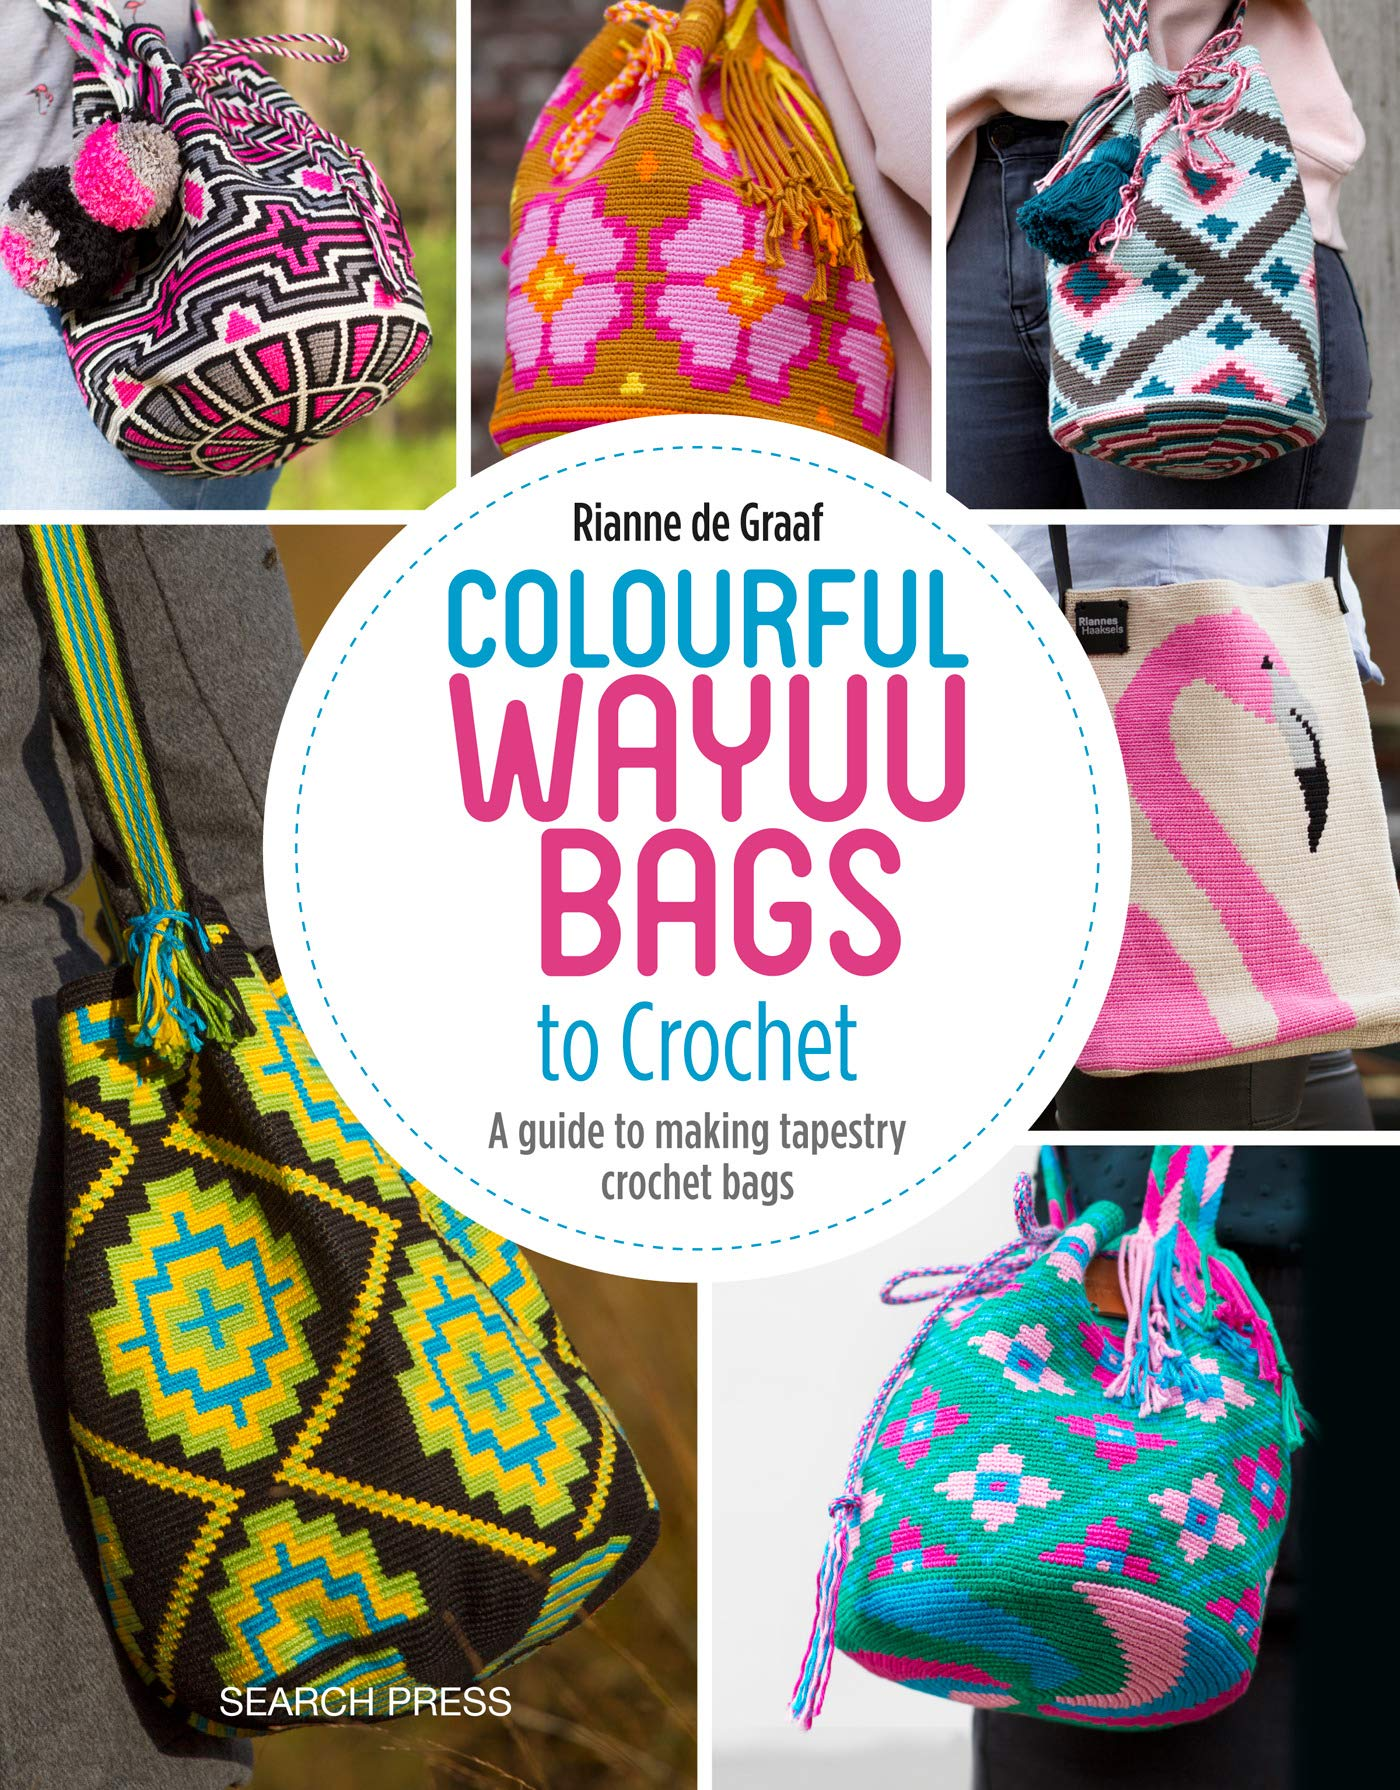 Colourful Wayuu Bags to Crochet: A guide to making tapestry crochet bags Paperback – April 9, 2019